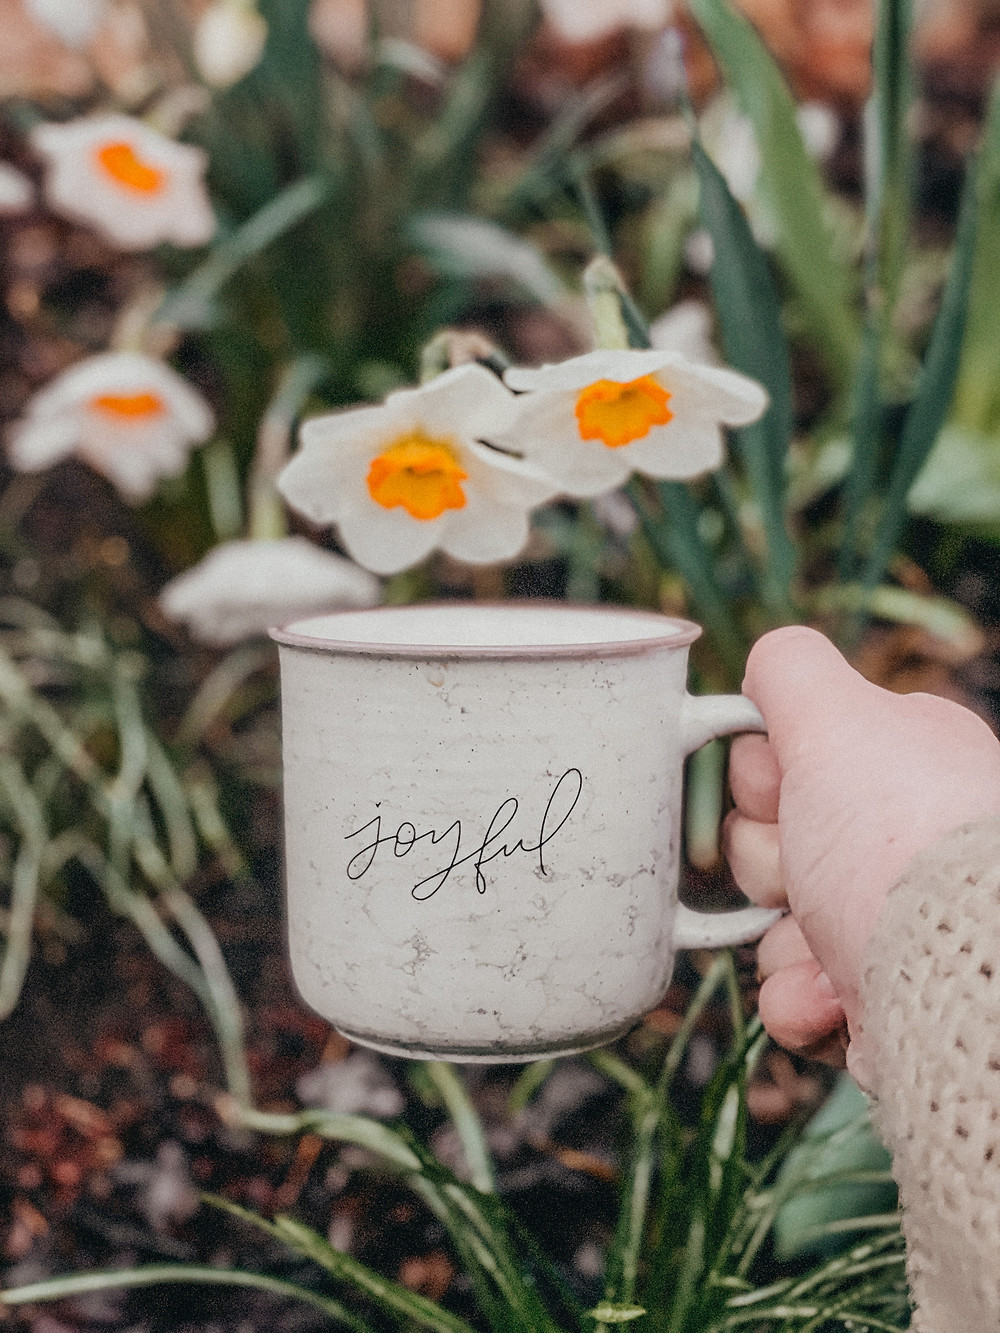 Joyful script on a marbled coffee mug in front of daffodils blooming. Behind the scenes at Anna Gutermuth Photography.